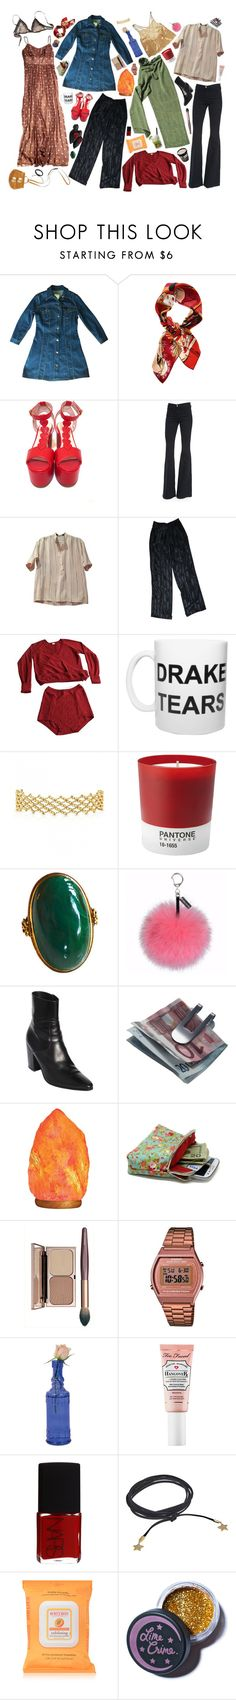 """""""drake's tears- enough to go around!"""" by oh-love-you-too ❤ liked on Polyvore featuring Christian Dior, Frame, Yves Saint Laurent, Balenciaga, Eres, Banana Republic, Caipirinha, Pantone, Helen Moore and Georg Jensen"""